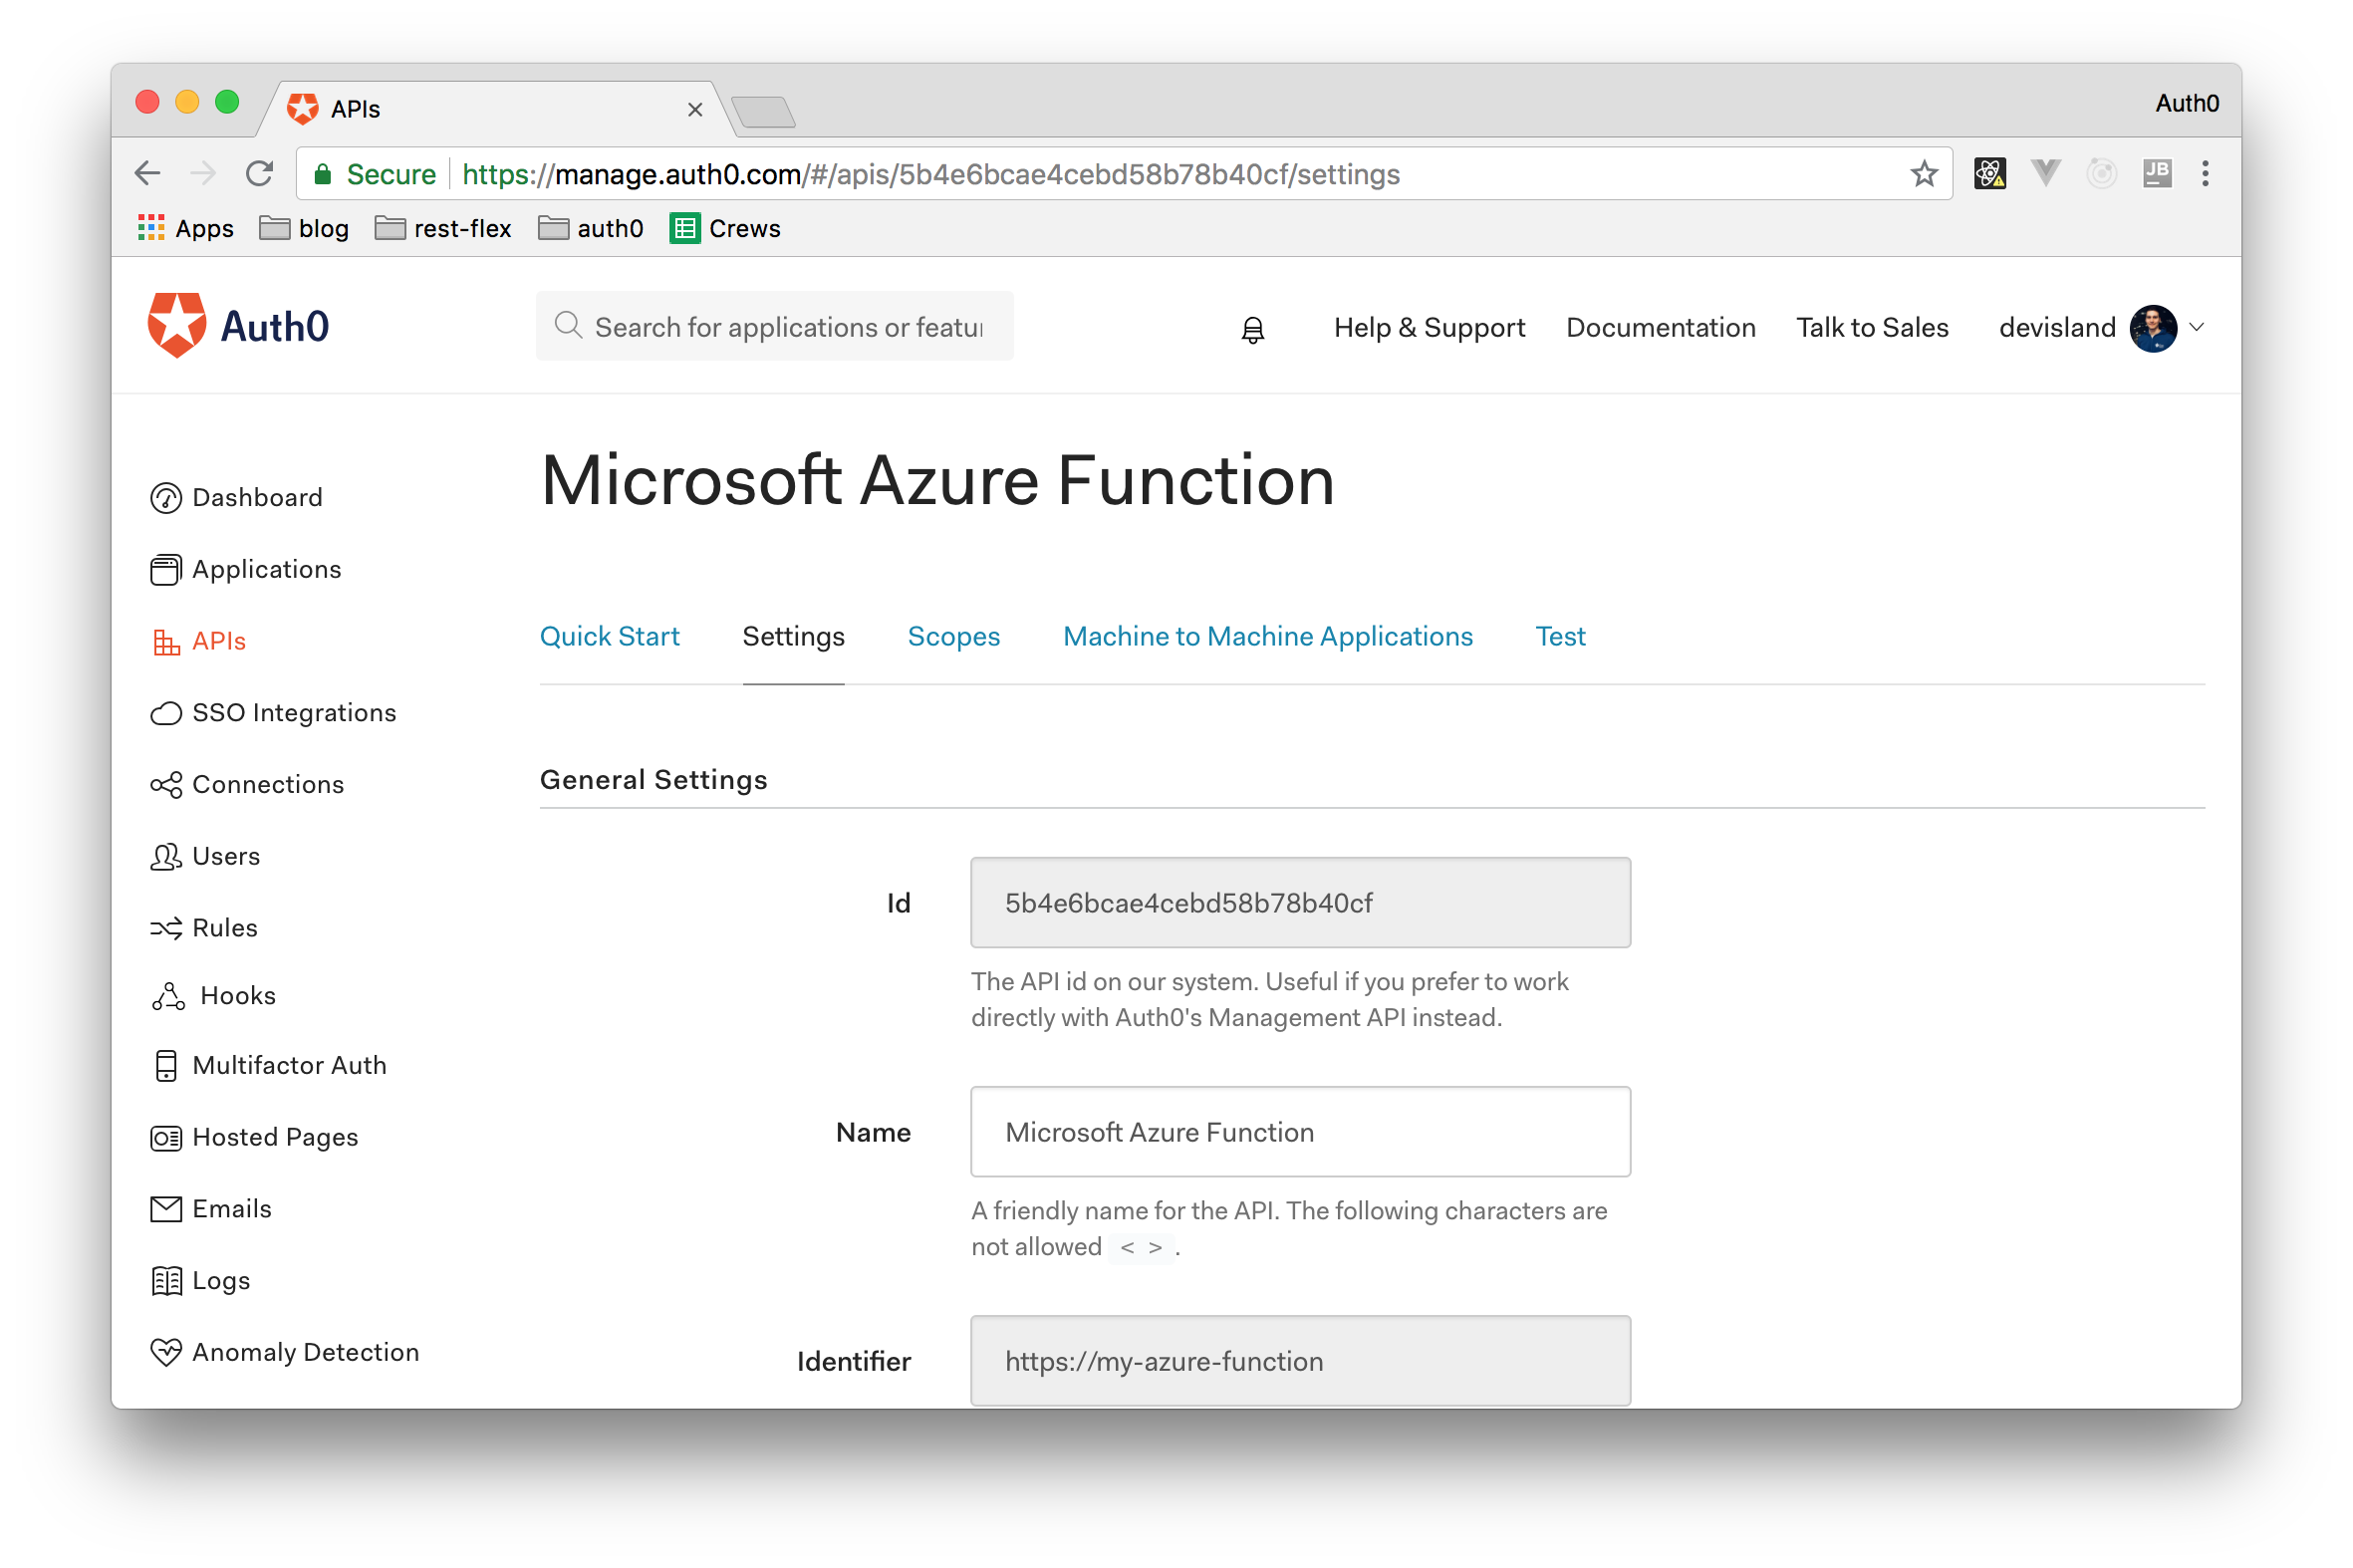 Developing Mobile Apps with Xamarin Forms and Azure Functions